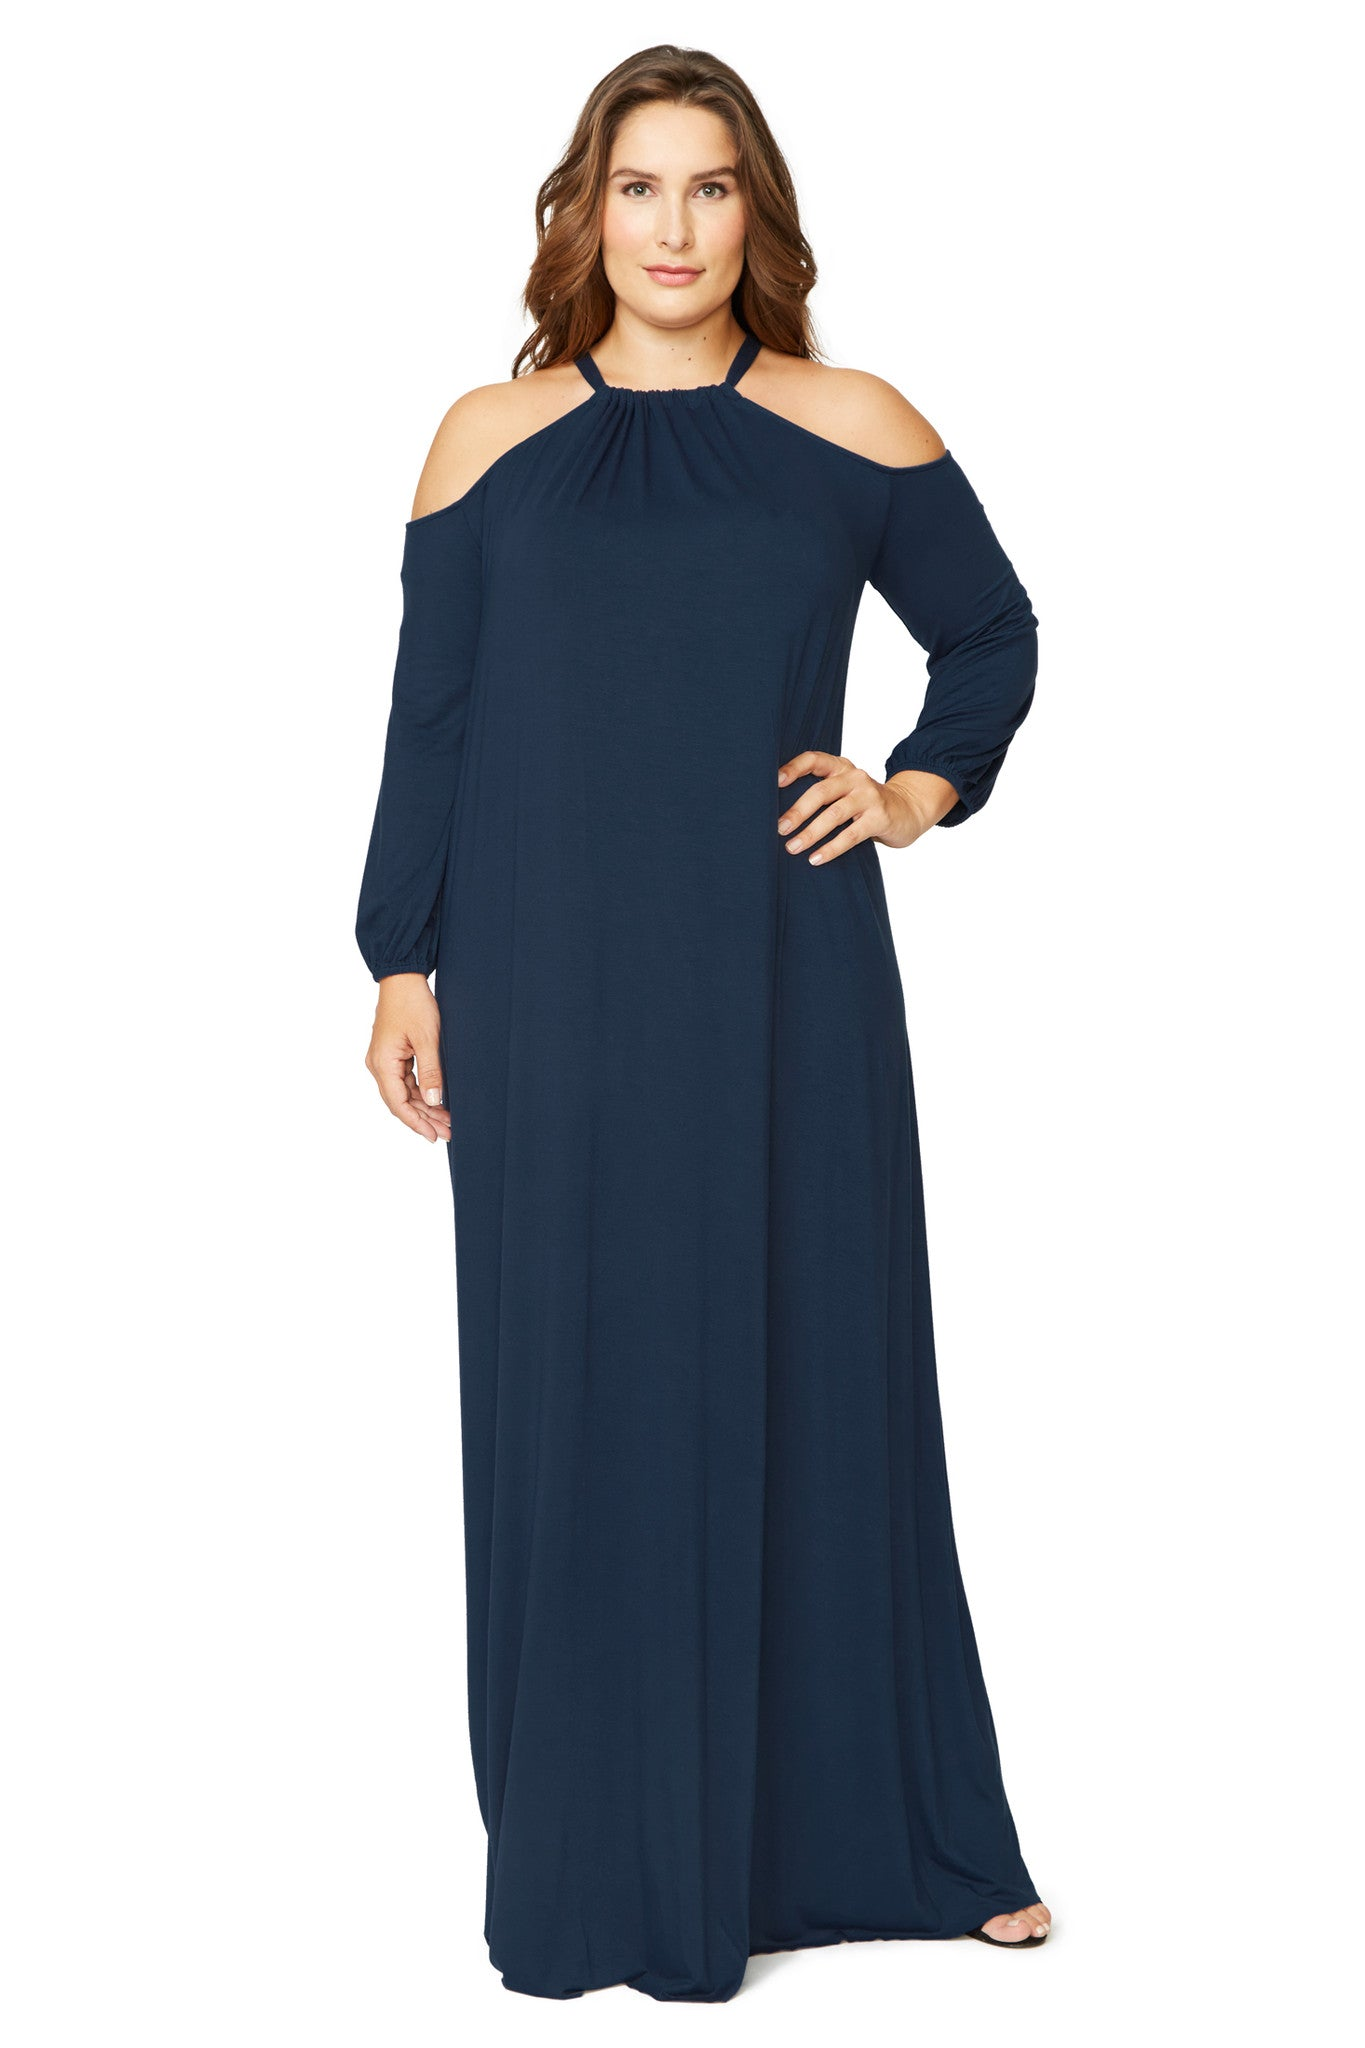 Eliot Dress WL - Astral